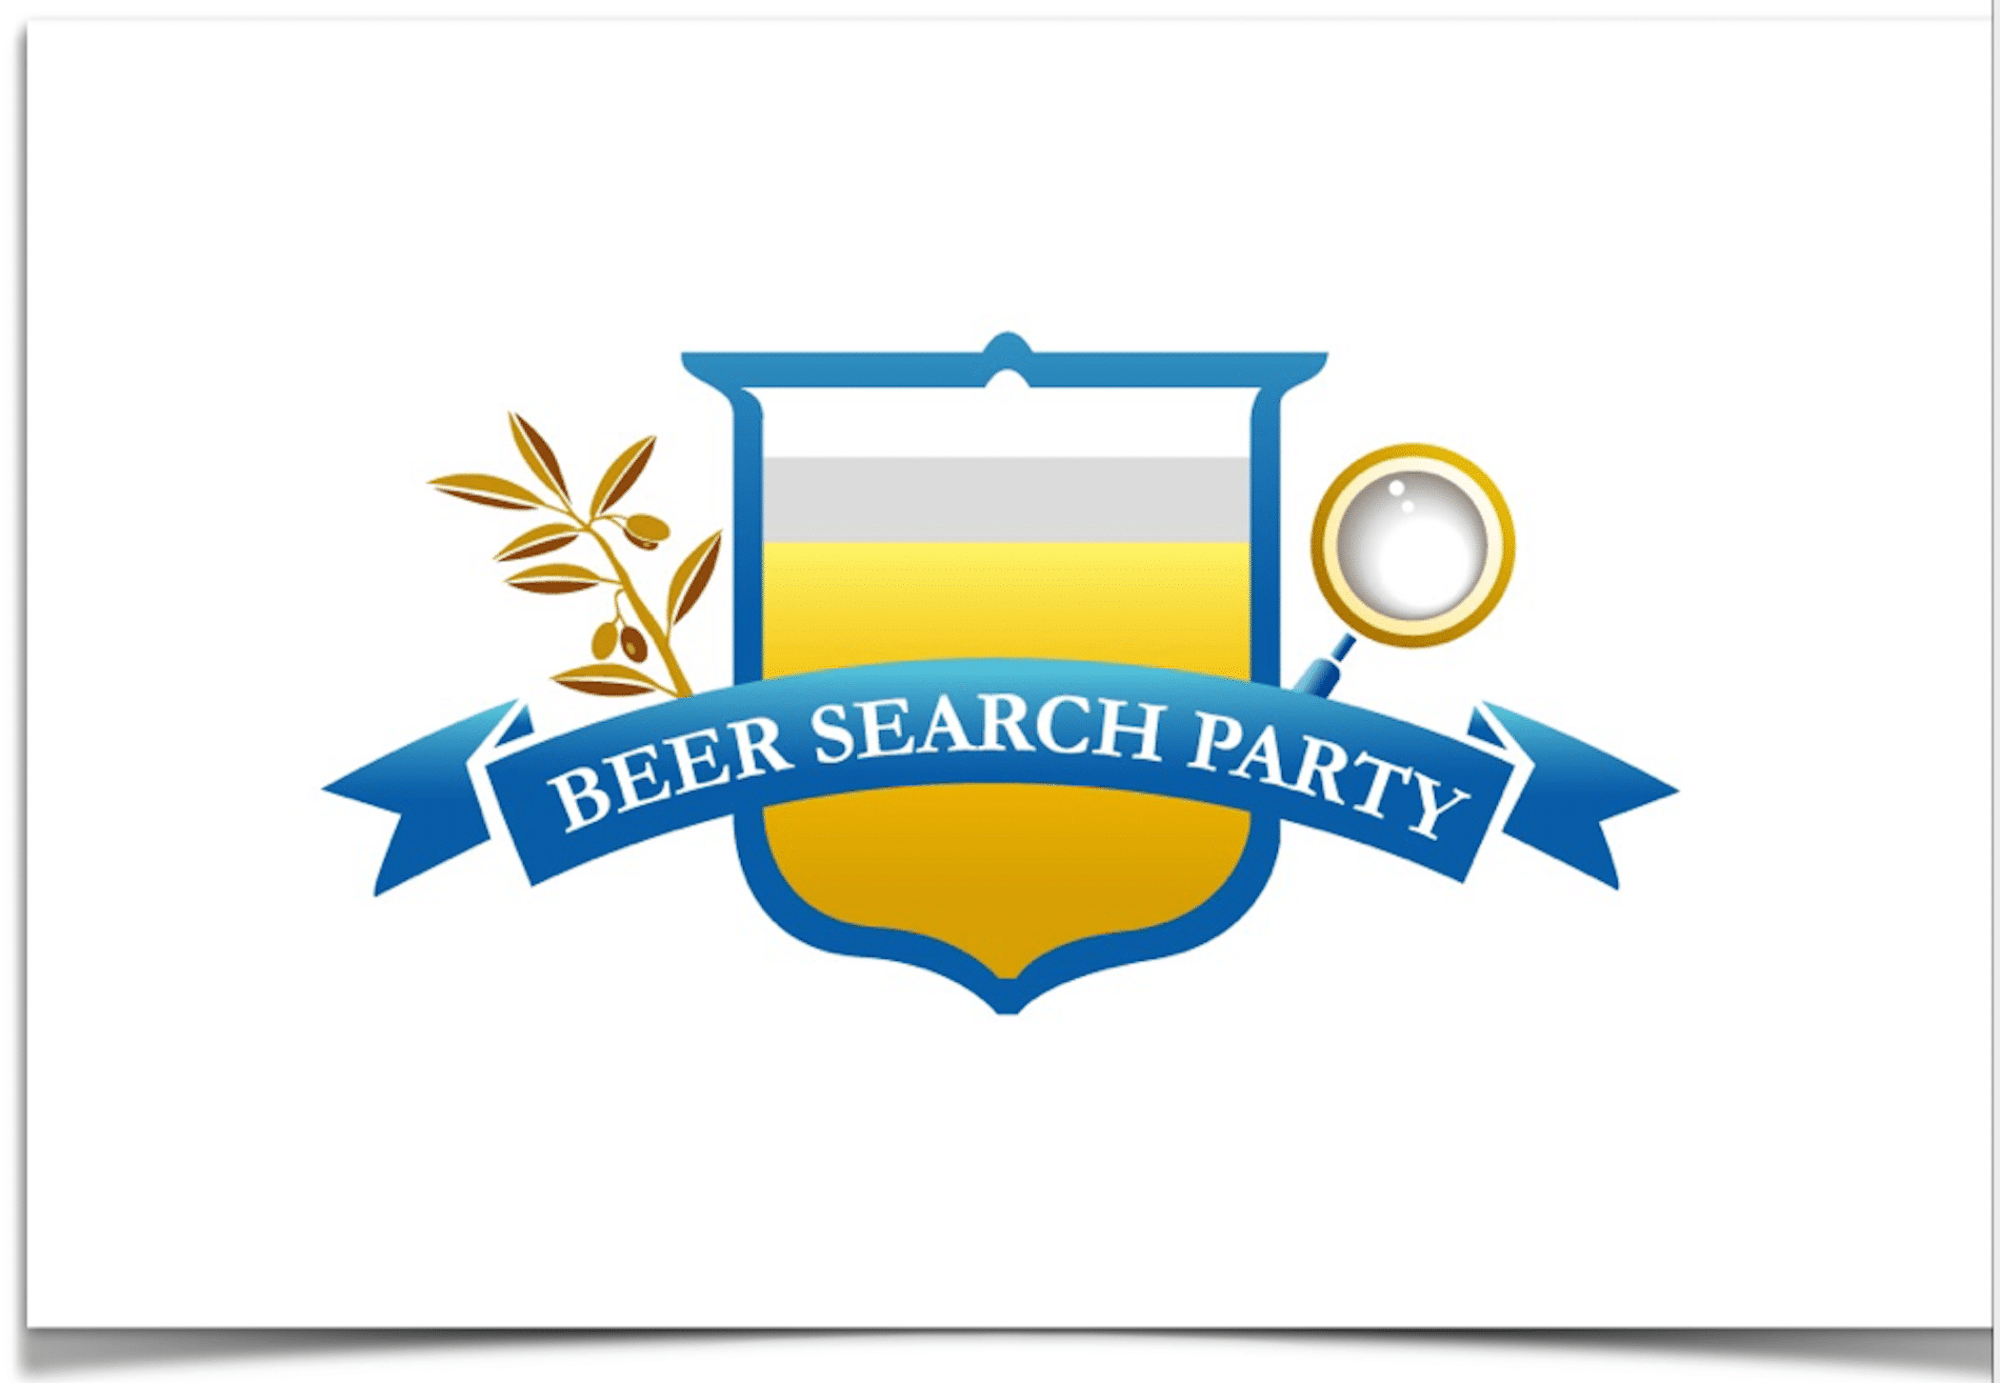 Beer Search Party